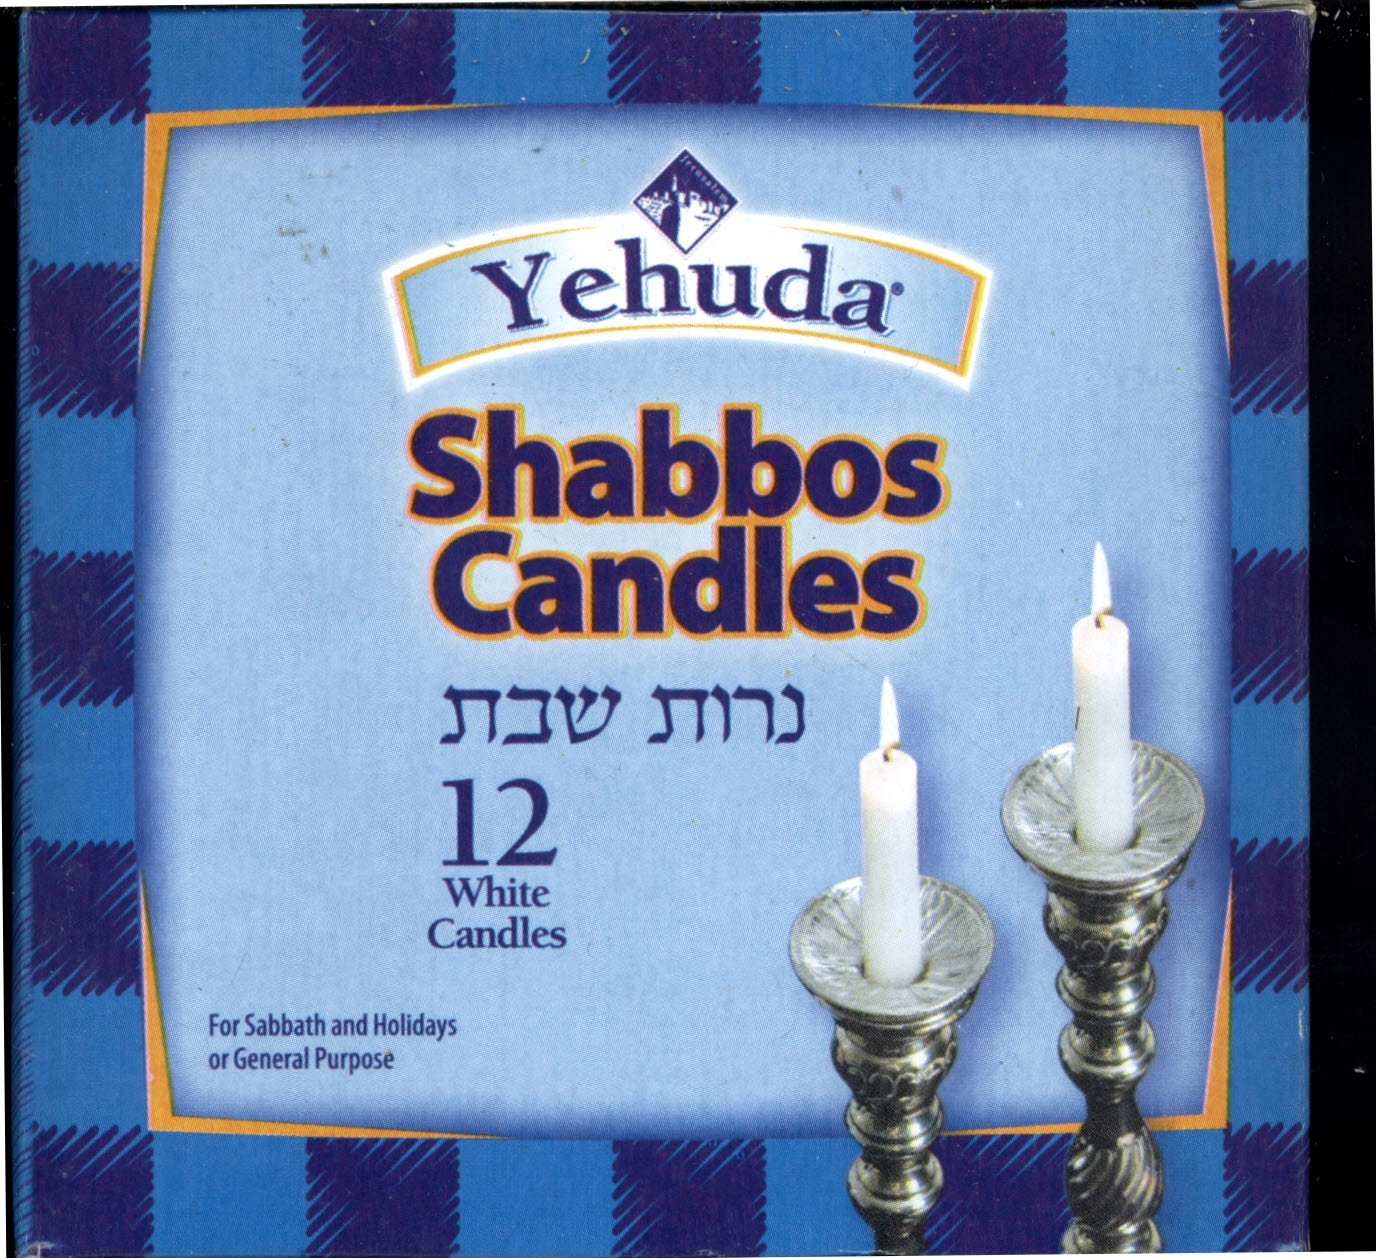 Amazon.com: Yehuda Shabbos Candles   12 Pack   White Candles: Home U0026 Kitchen